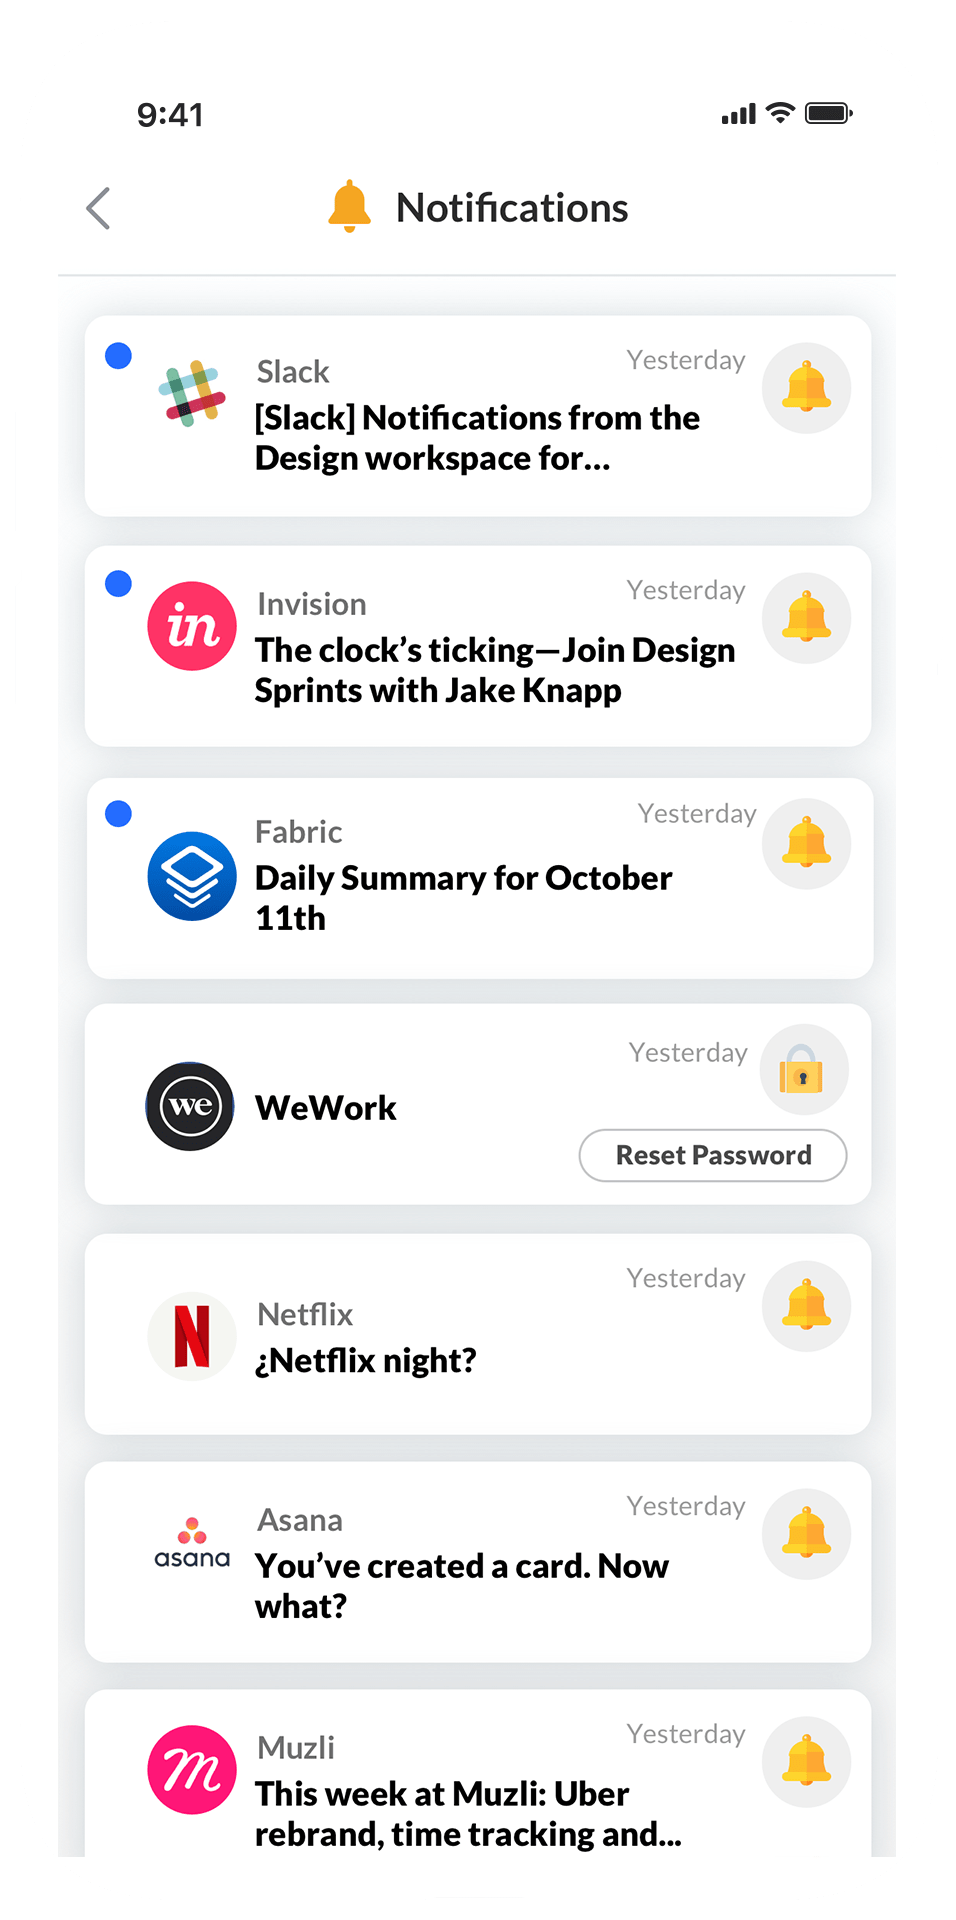 june.ai notifications feed